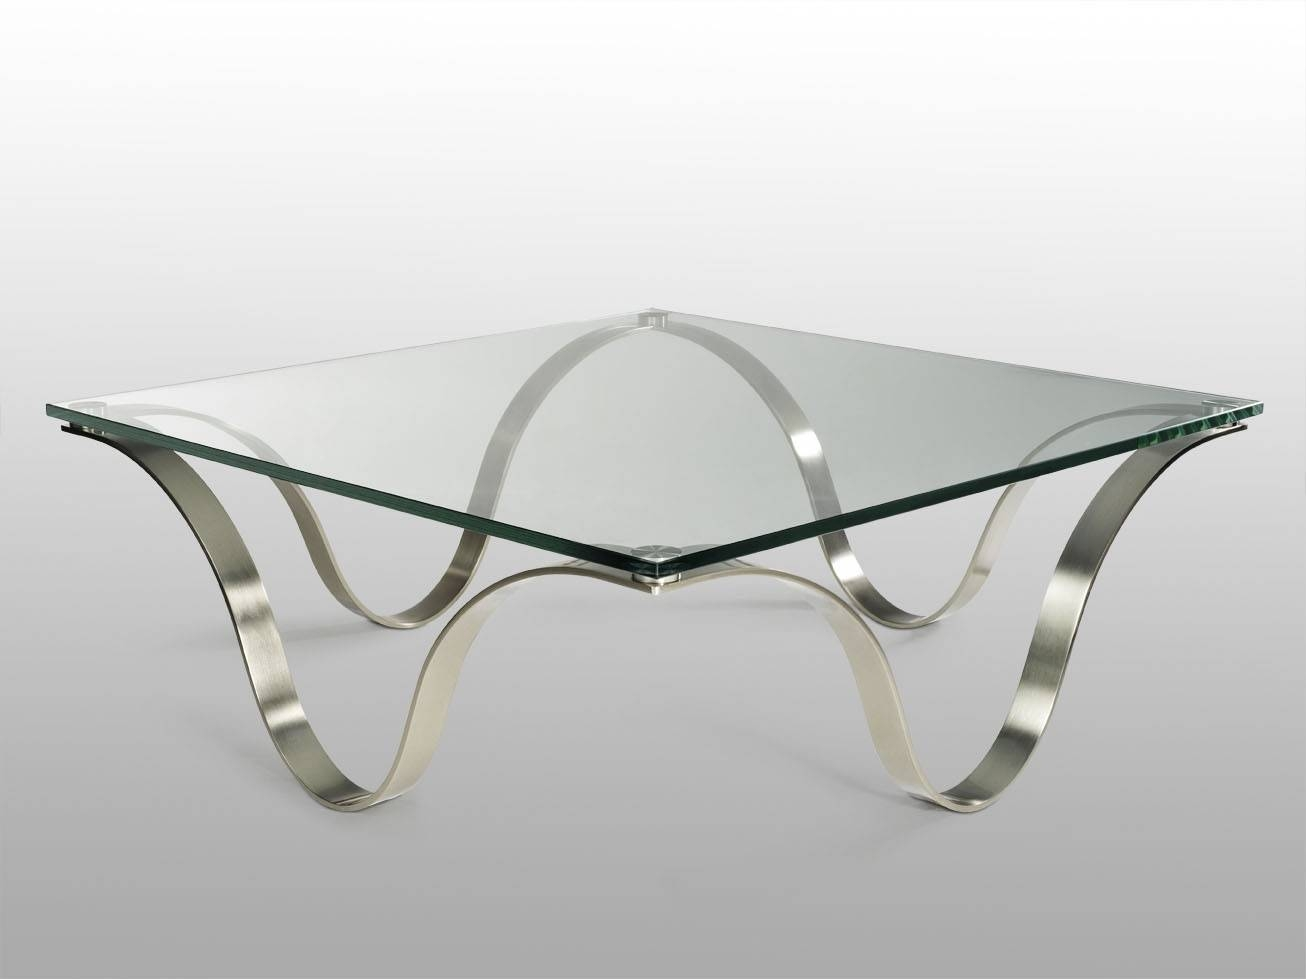 Table : Modern Square Glass Coffee Table Transitional Large Modern with Large Square Glass Coffee Tables (Image 30 of 30)